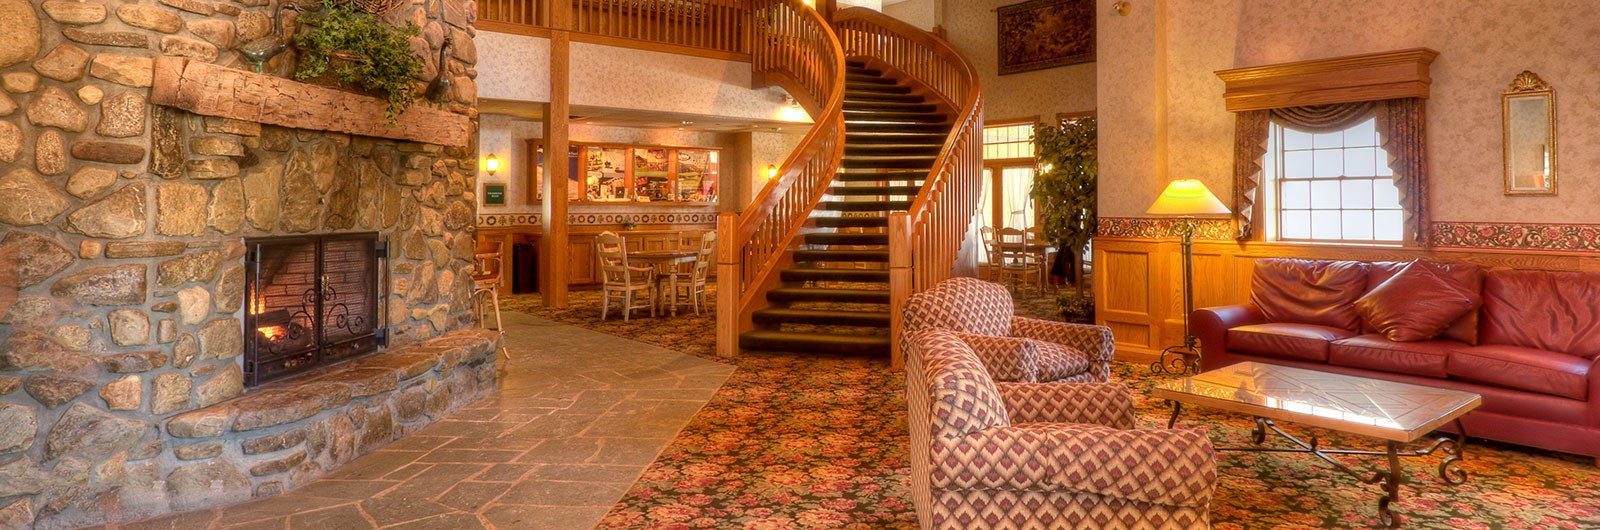 Lobby of the Inn at Holiday Valley